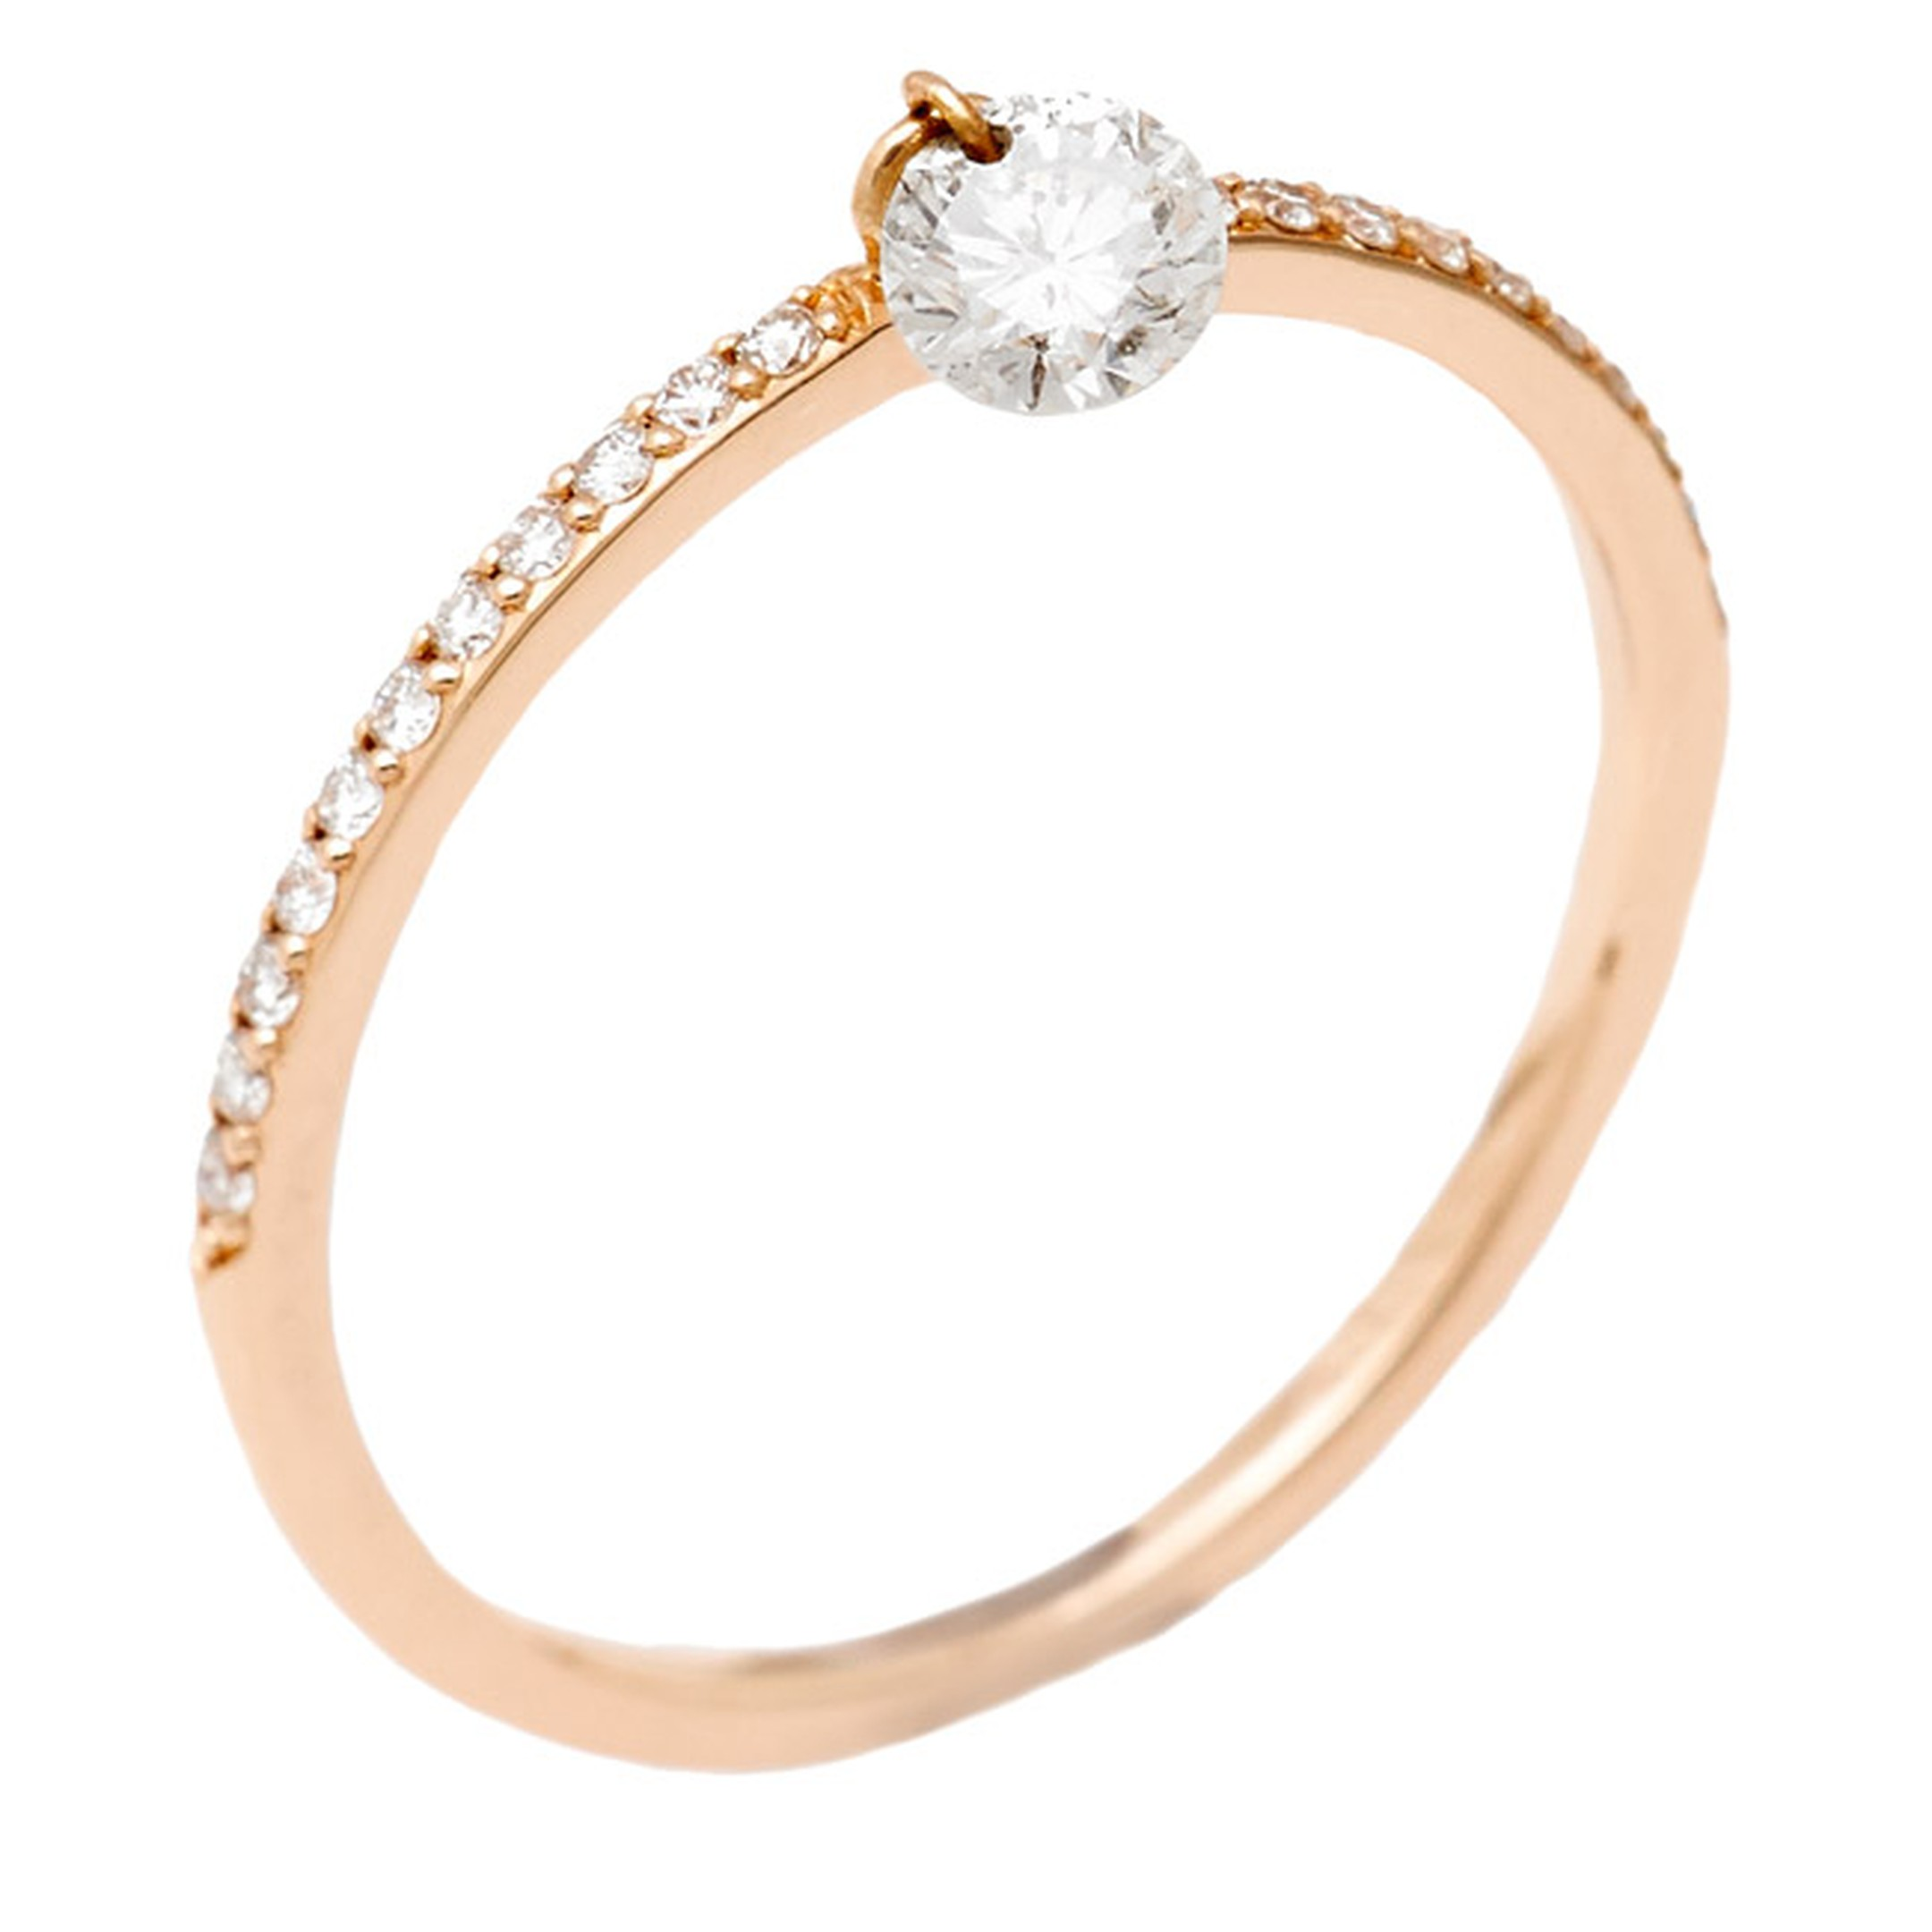 Raphael-Canot-Set-Free-Ring-in-Pink-Gold-Main